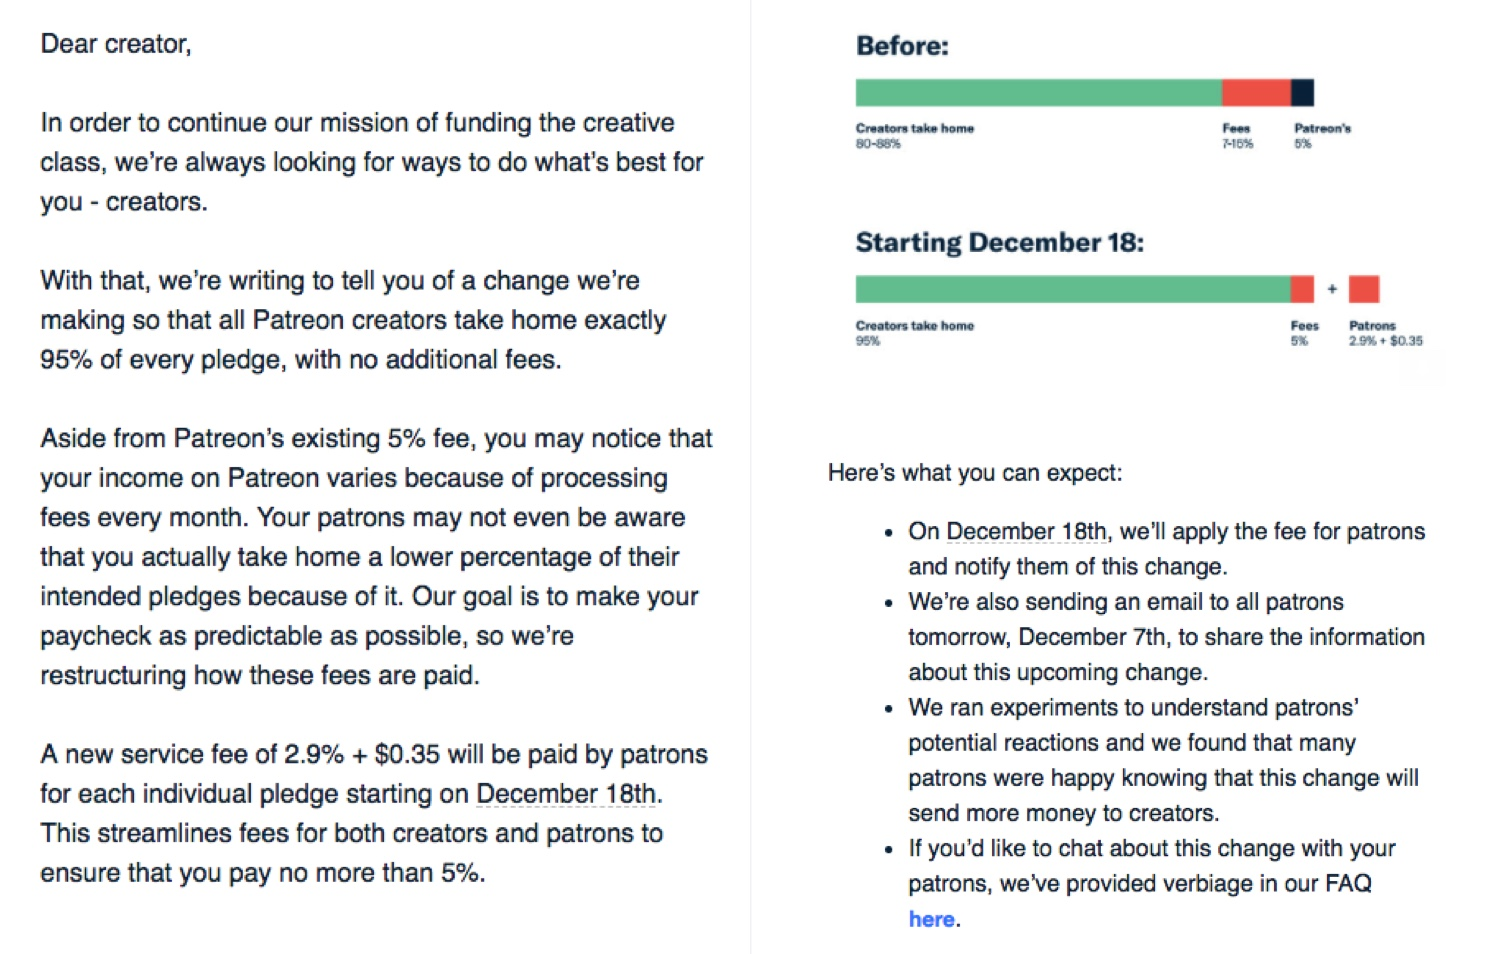 Patreon's fee change punishes supporters who make small pledges